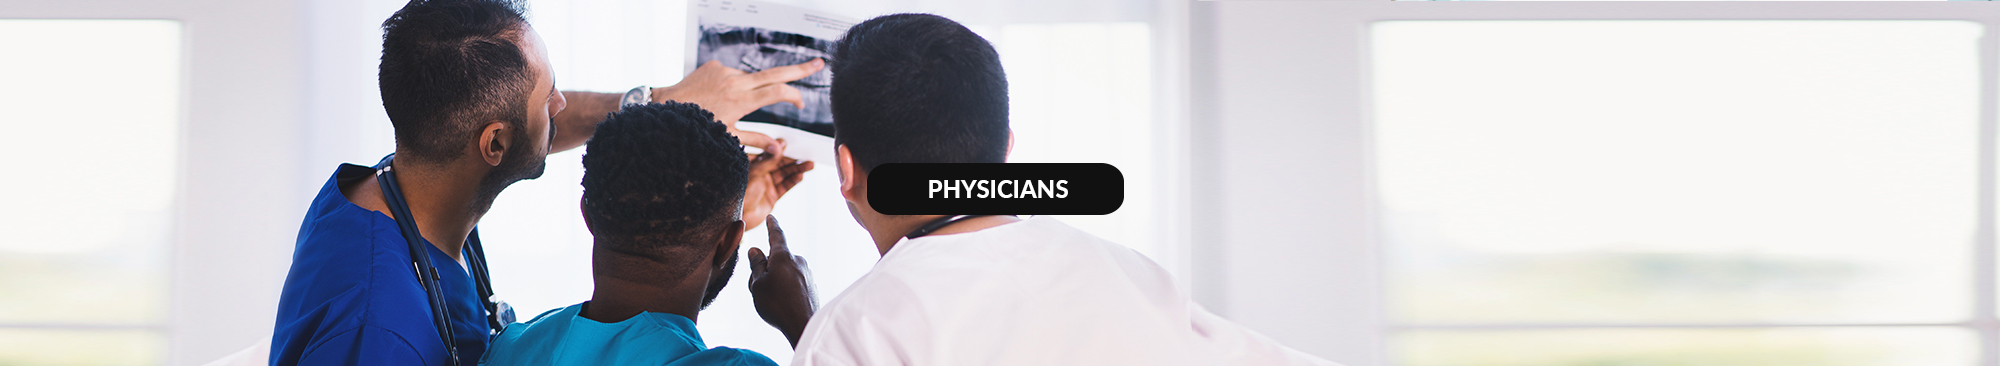 International Medical Placement - Physicians